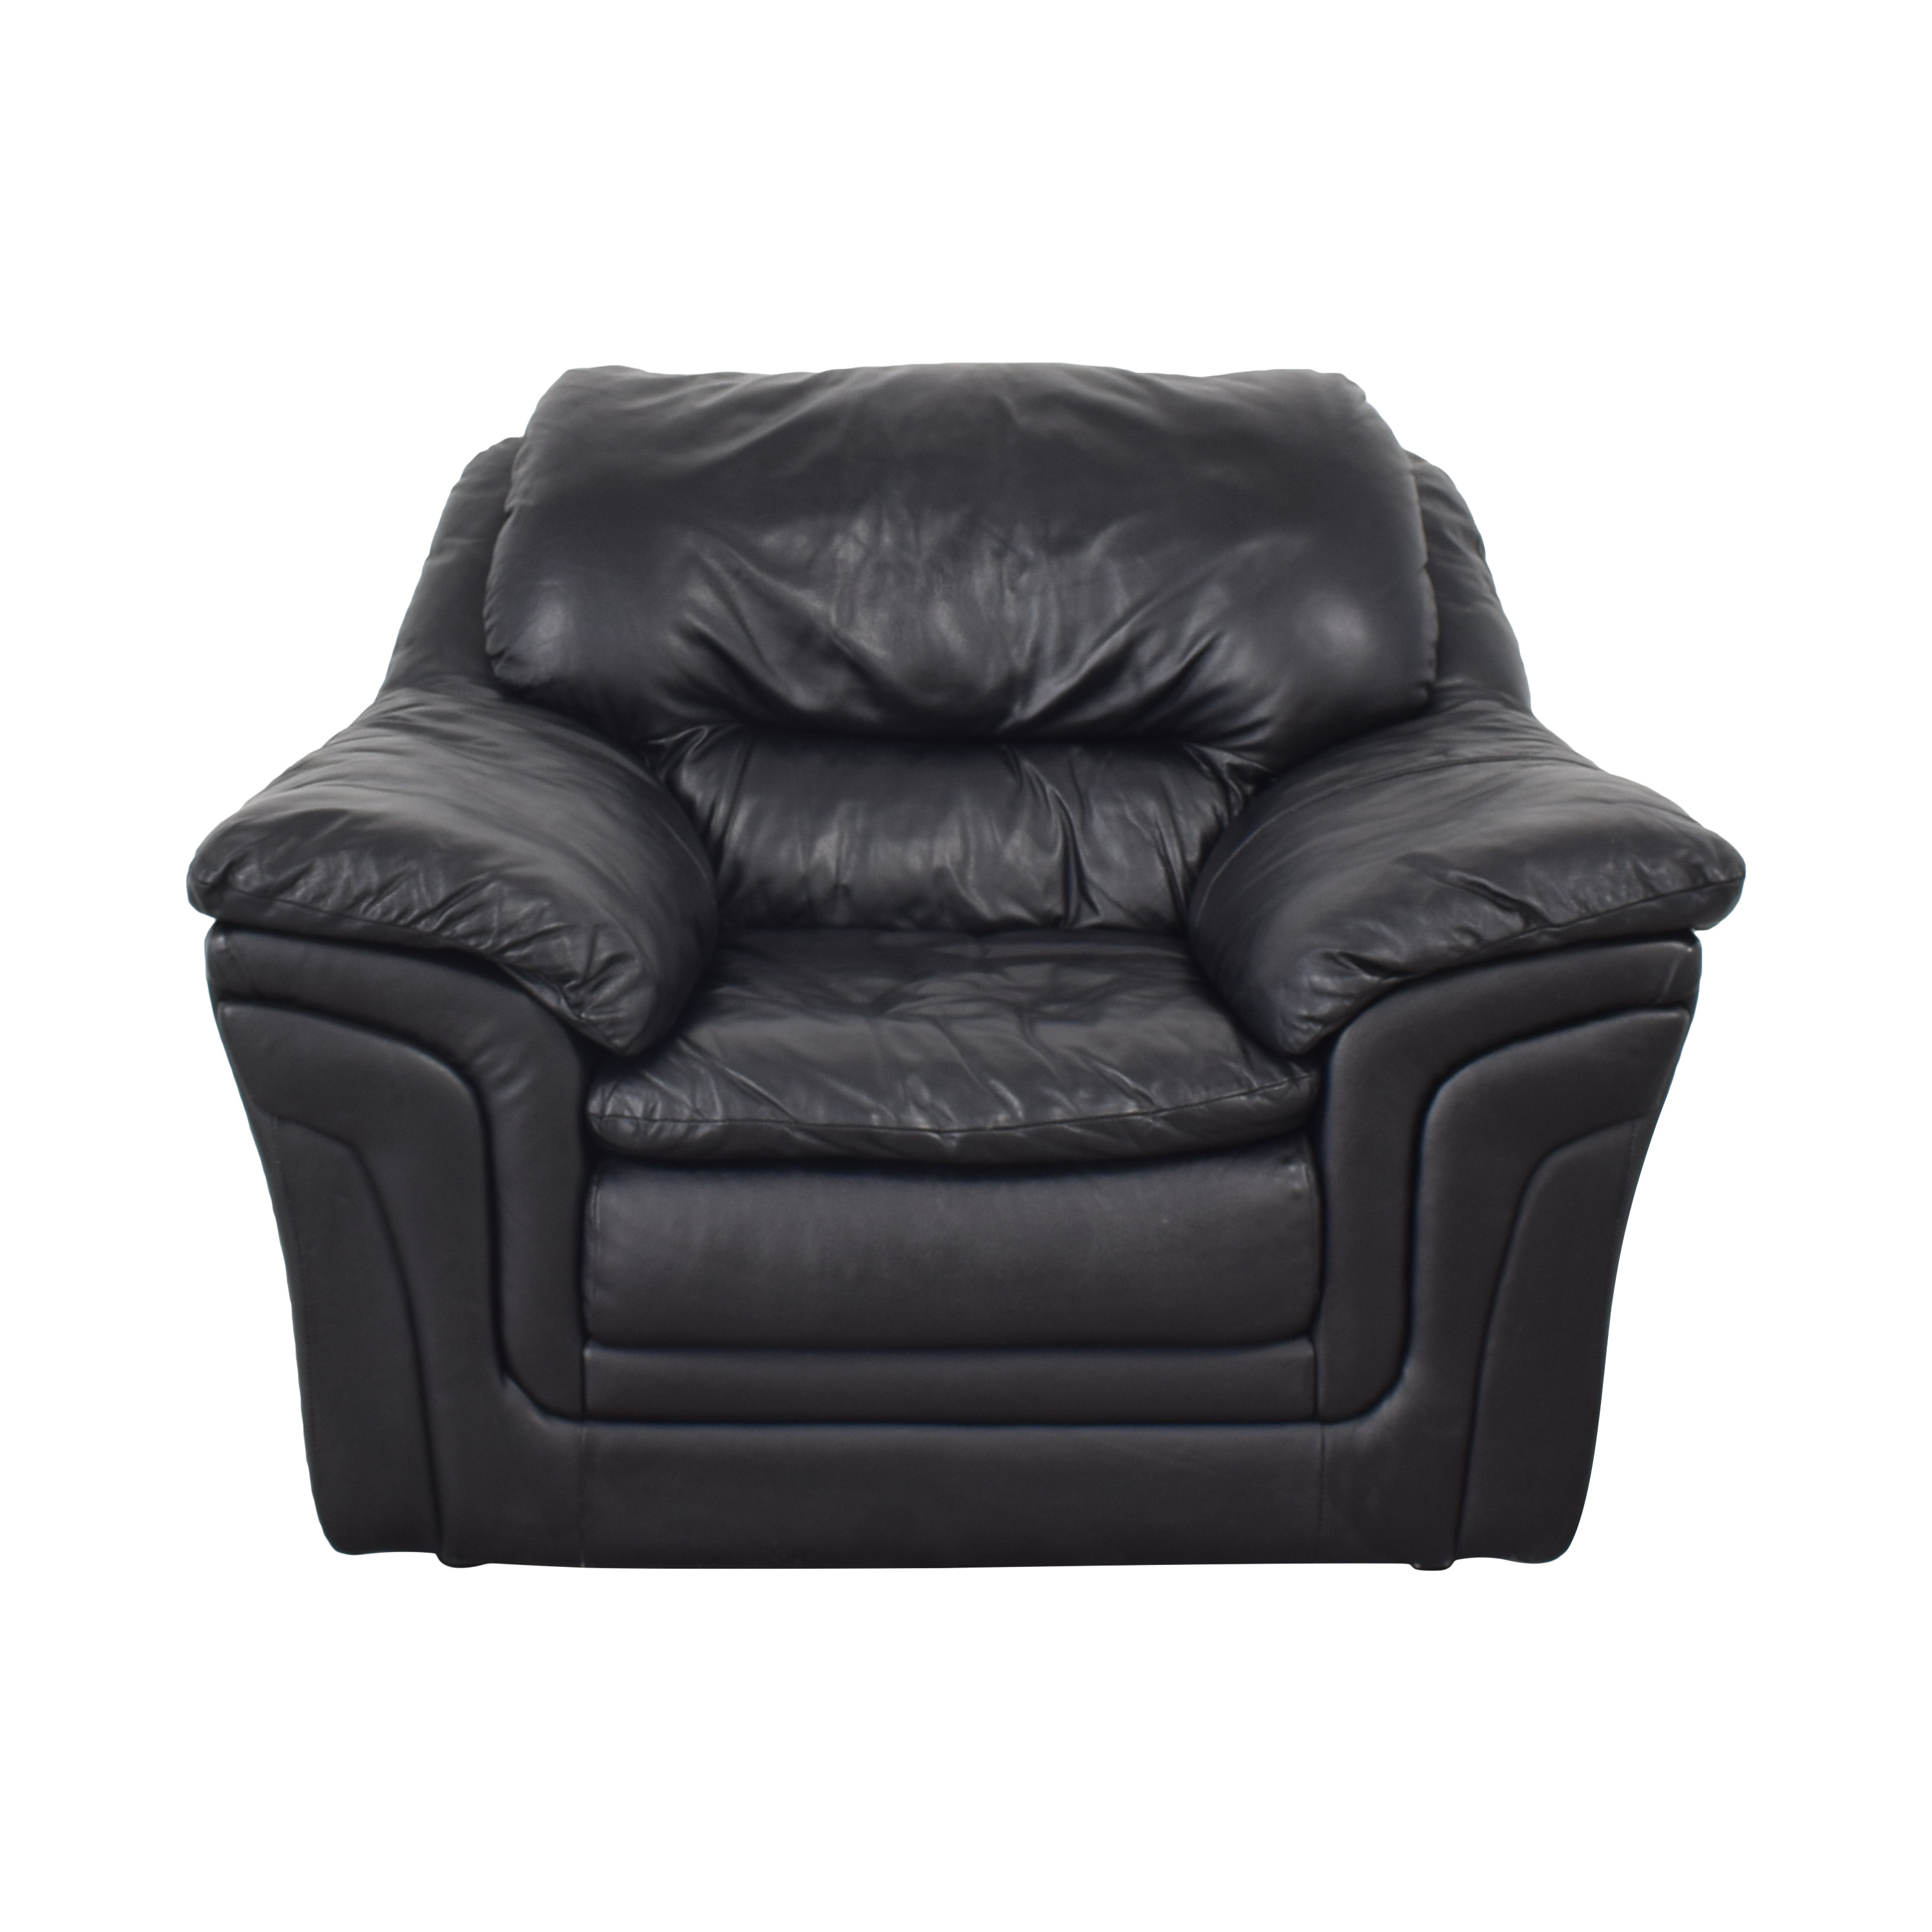 shop Soft Line SpA Chair with Ottoman Soft Line SpA